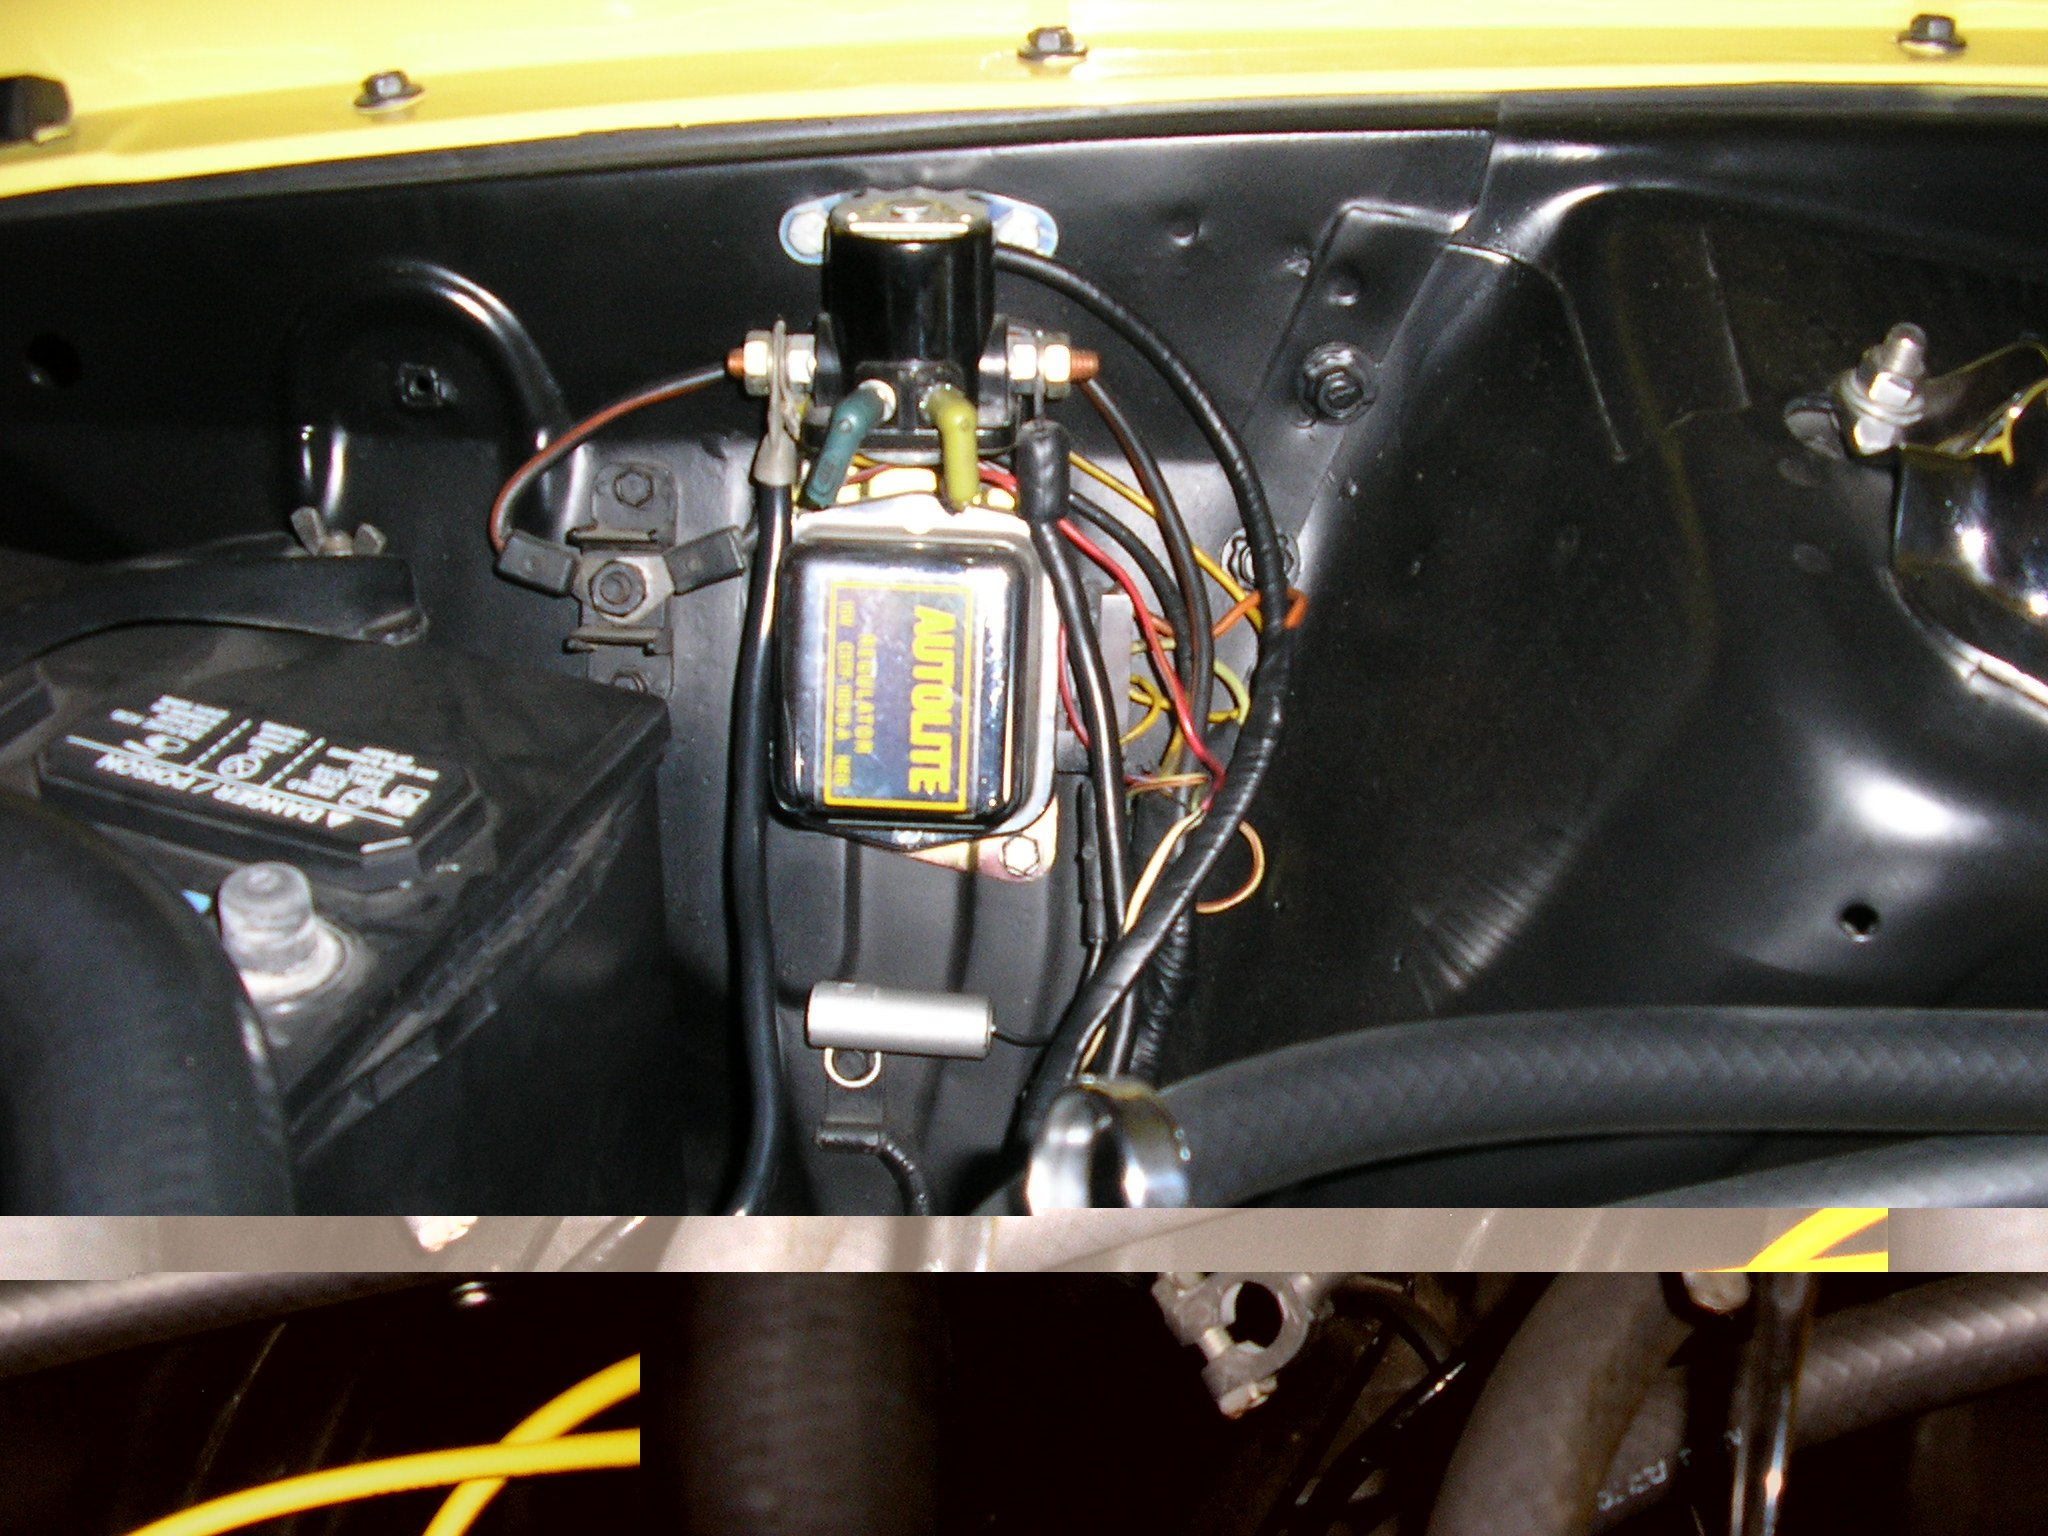 351 windsor wiring diagram dual radio cleveland 1973 mustang great installation of mach 1 starter solenoid ford forum rh allfordmustangs com mallory high fire ignition